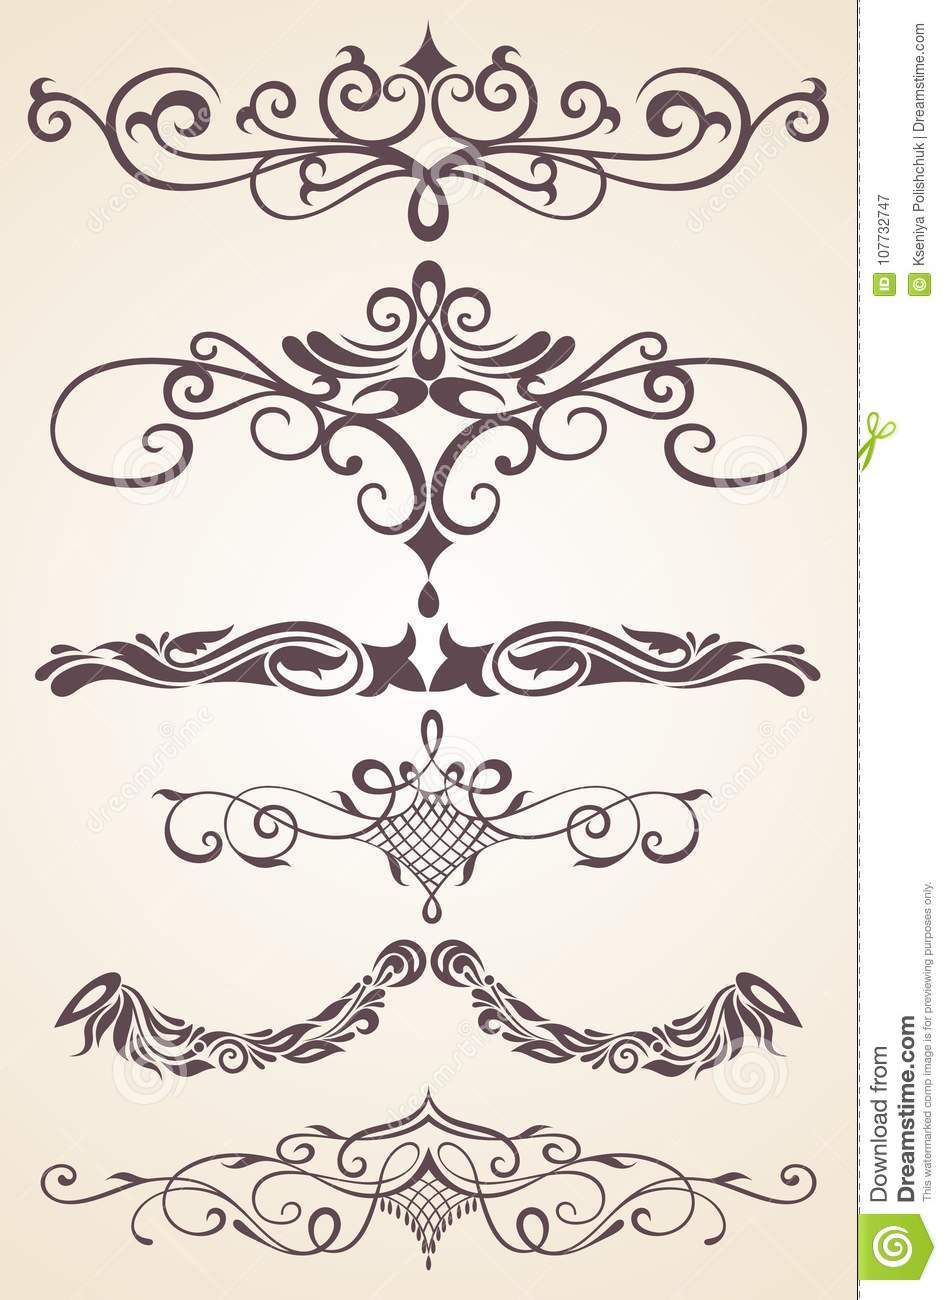 Vintage ornaments with floral elements for invitation